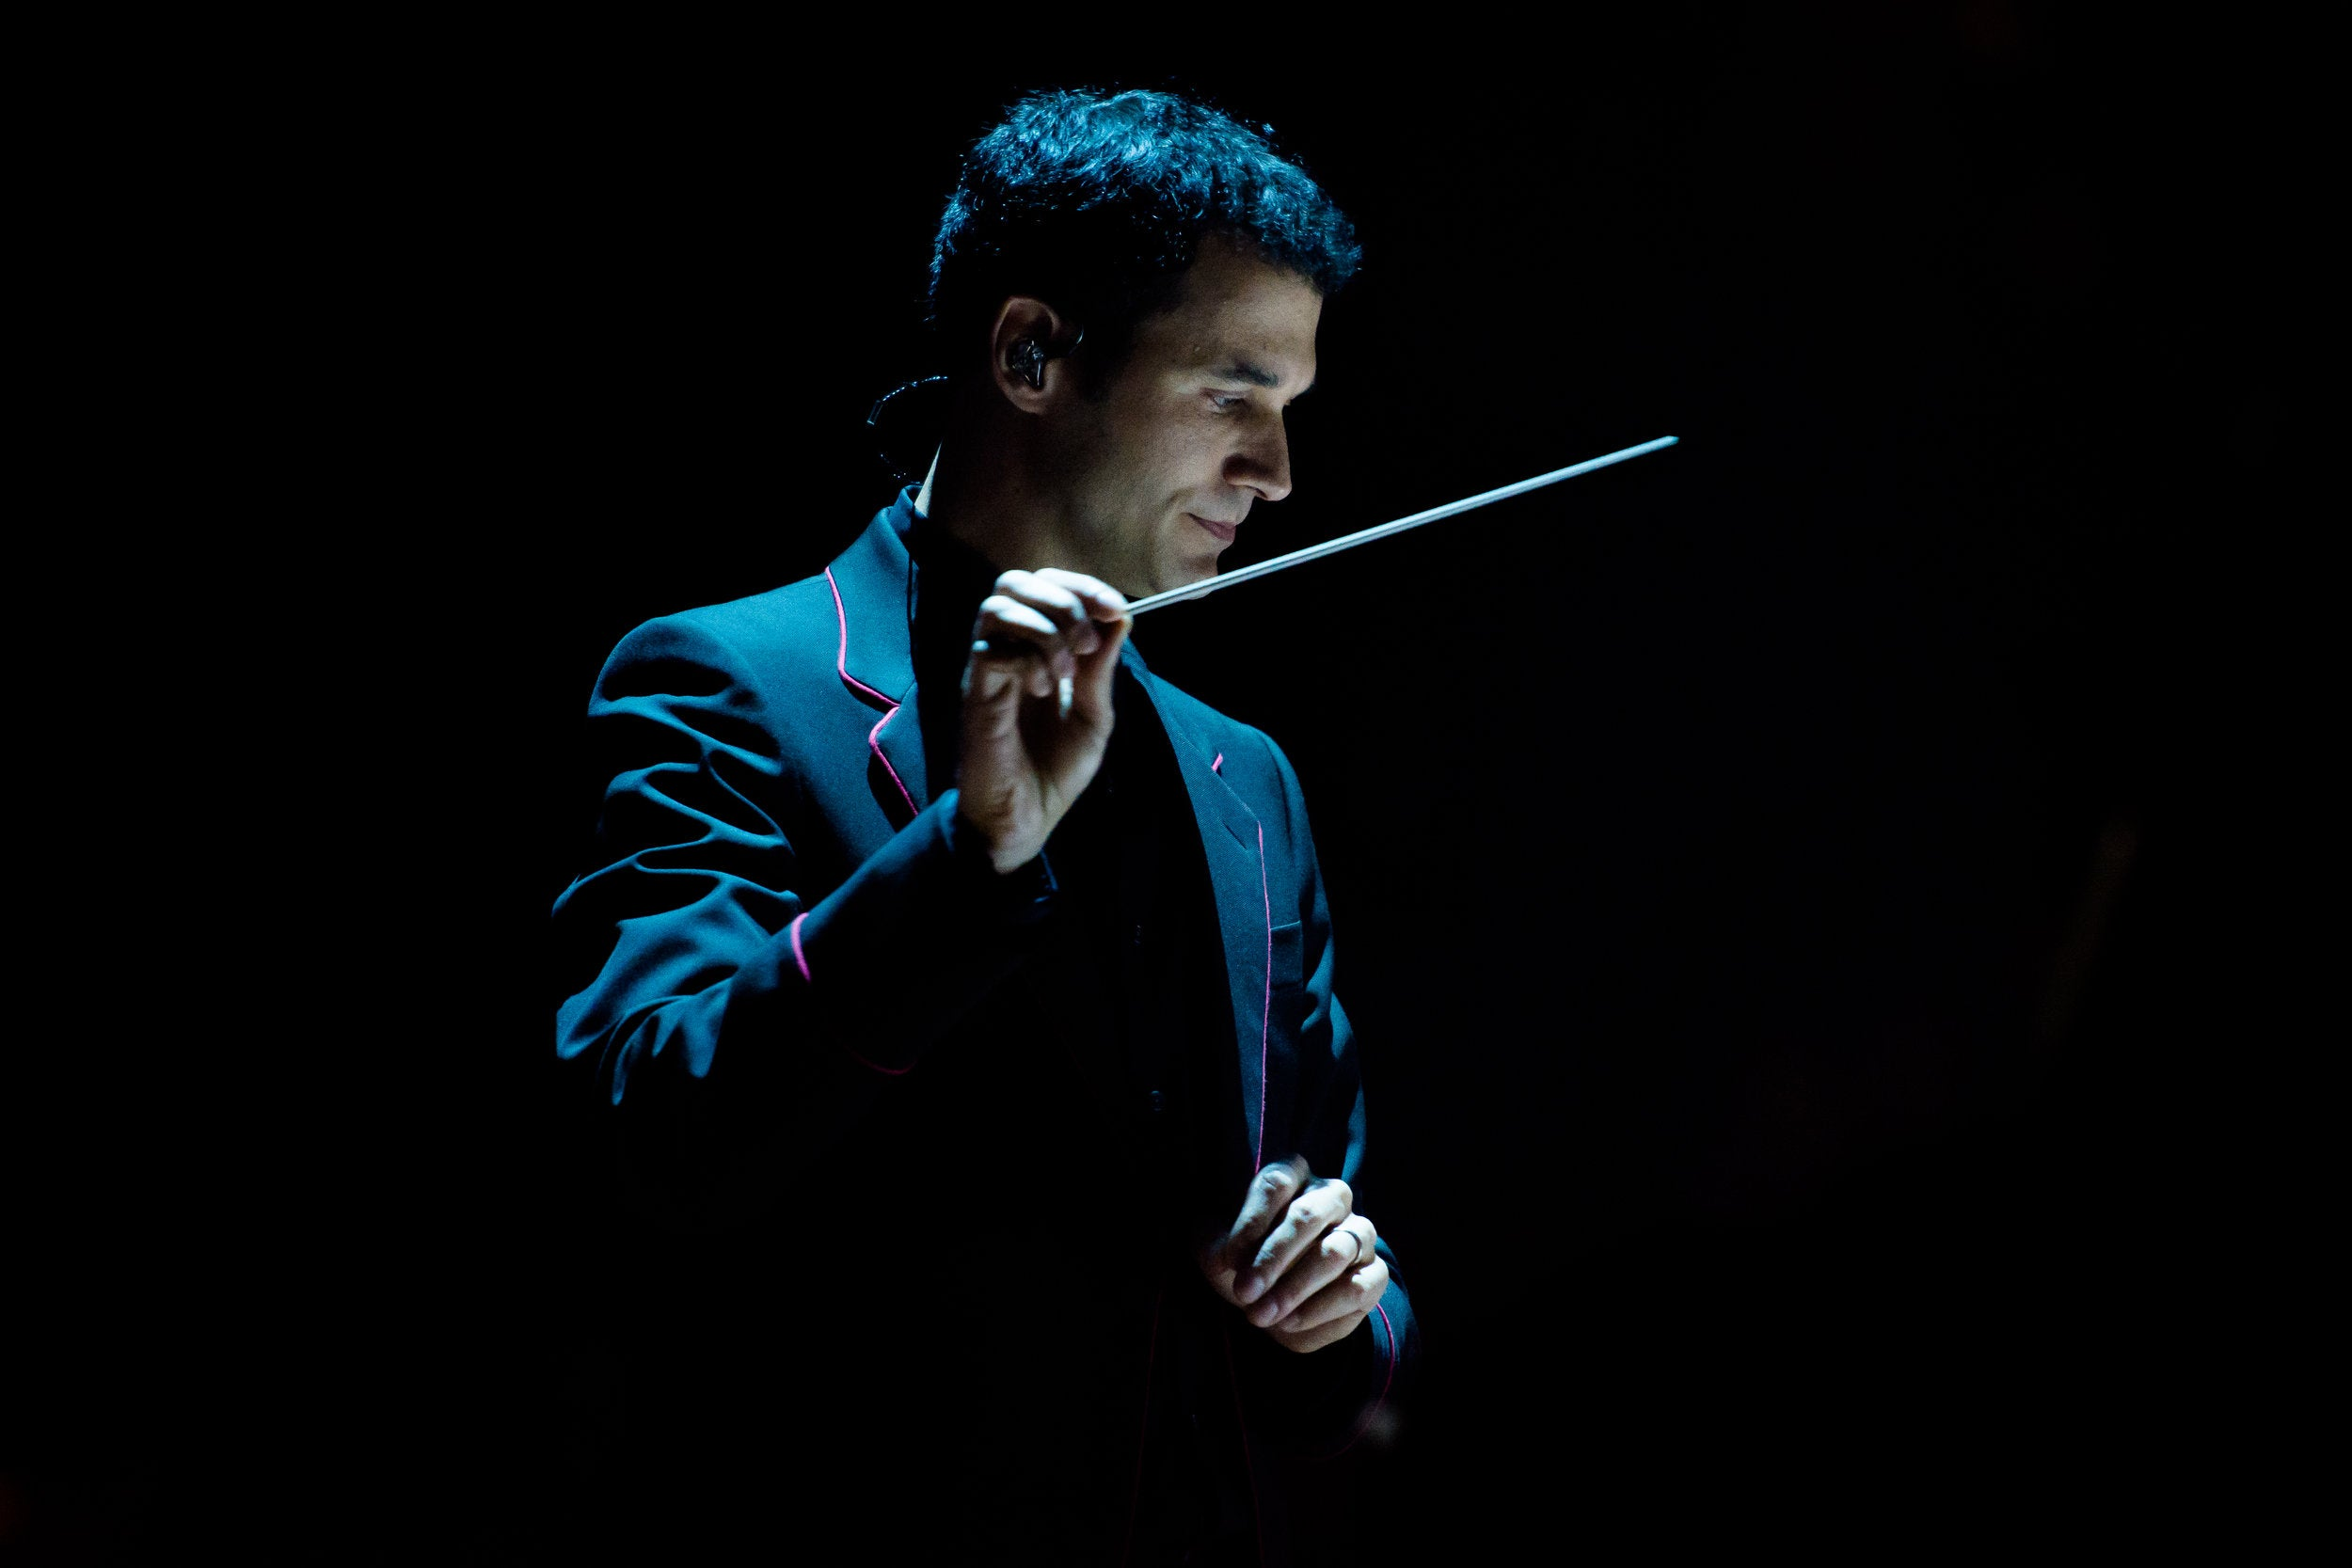 5 Things You Likely Didn't Know About Ramin Djawadi